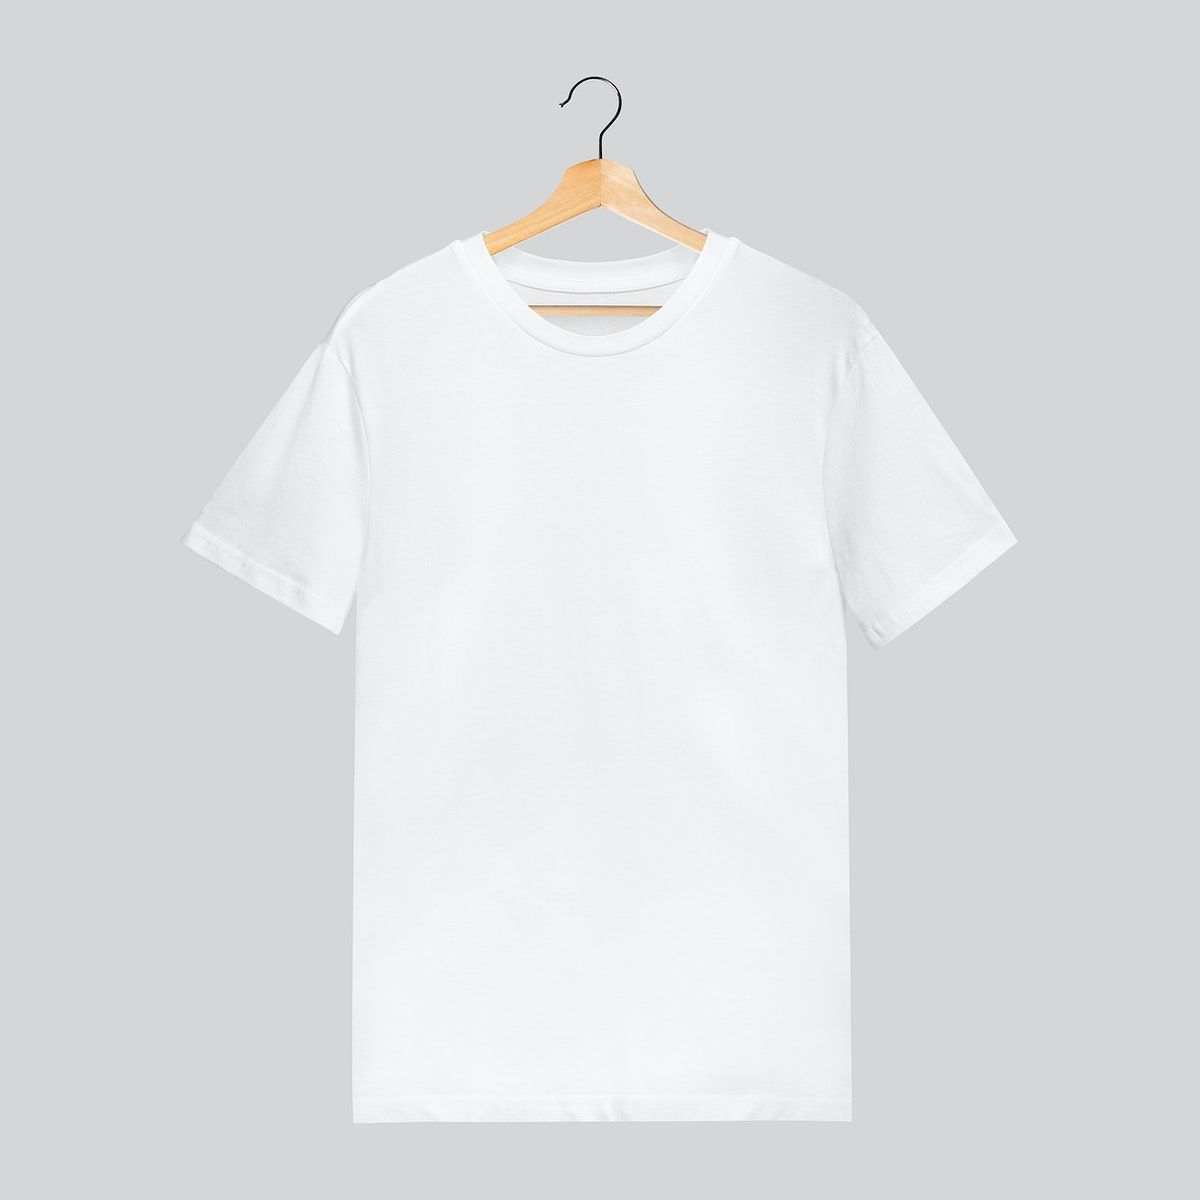 Download Download Premium Illustration Of White T Shirt Mockup On Gray Background Clothing Mockup Shirt Mockup Tshirt Mockup